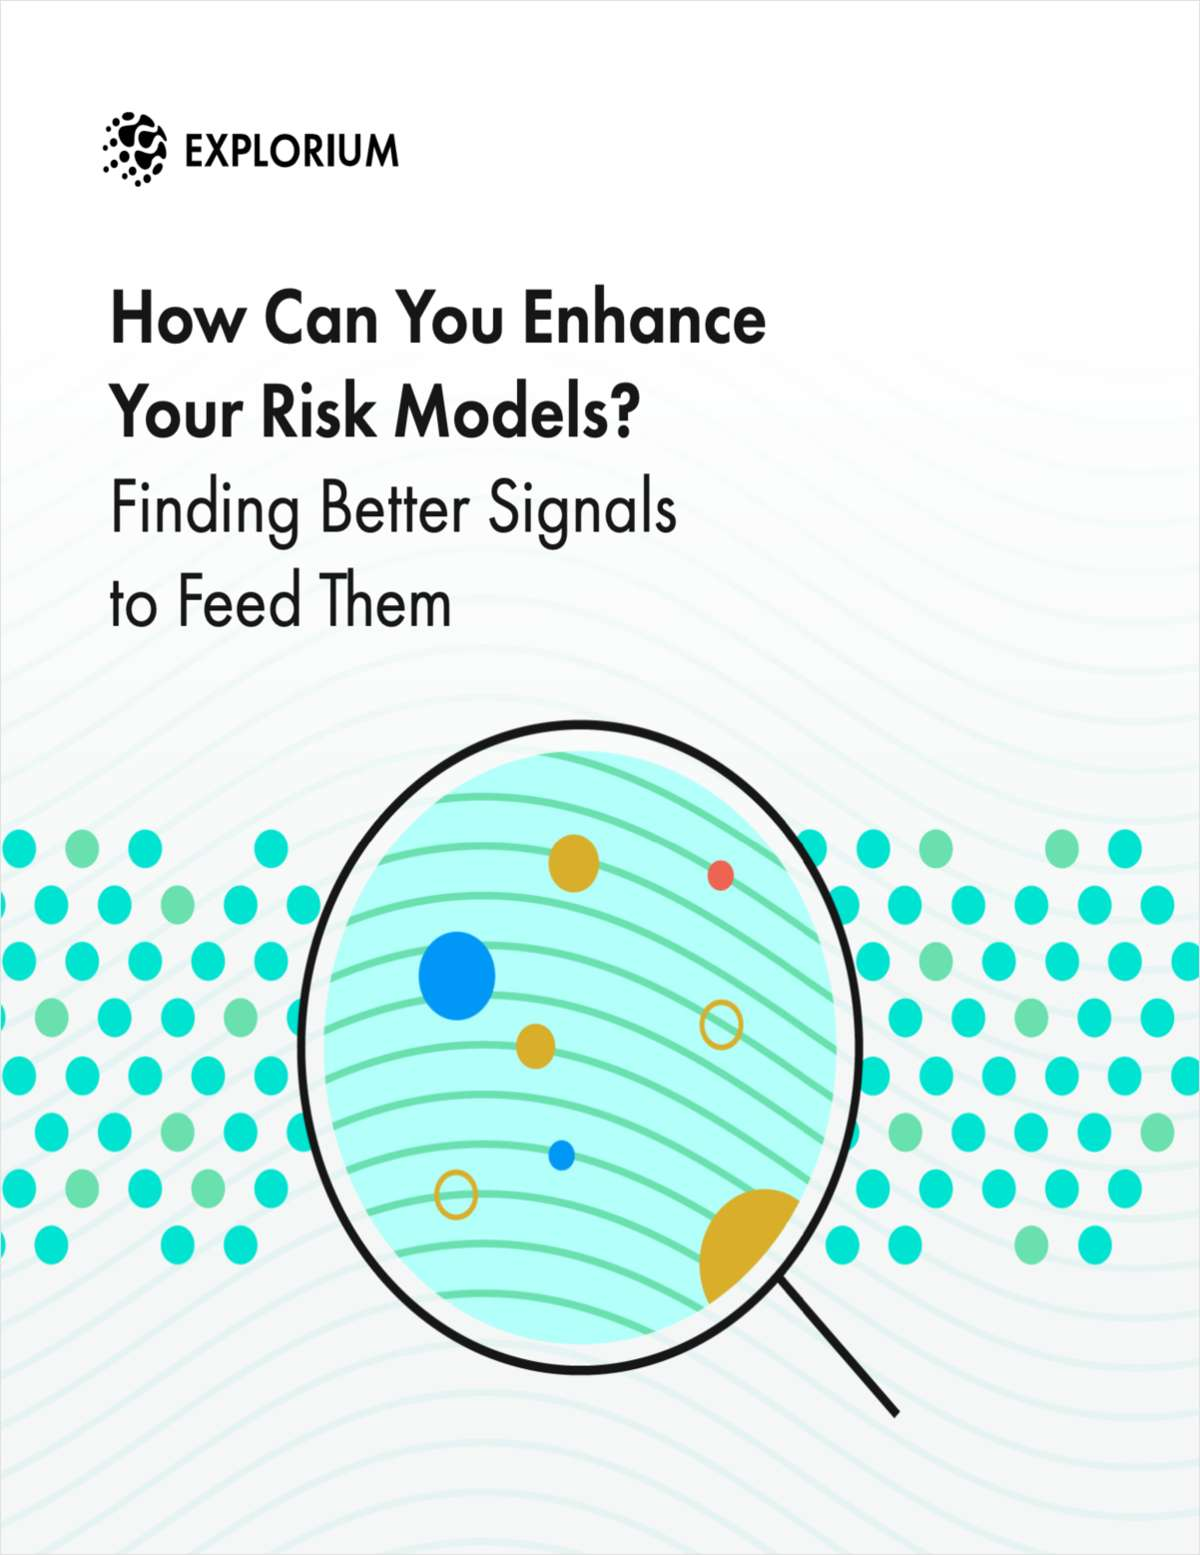 How Can You Enhance Your Risk Models? Finding Better Signals to Feed Them